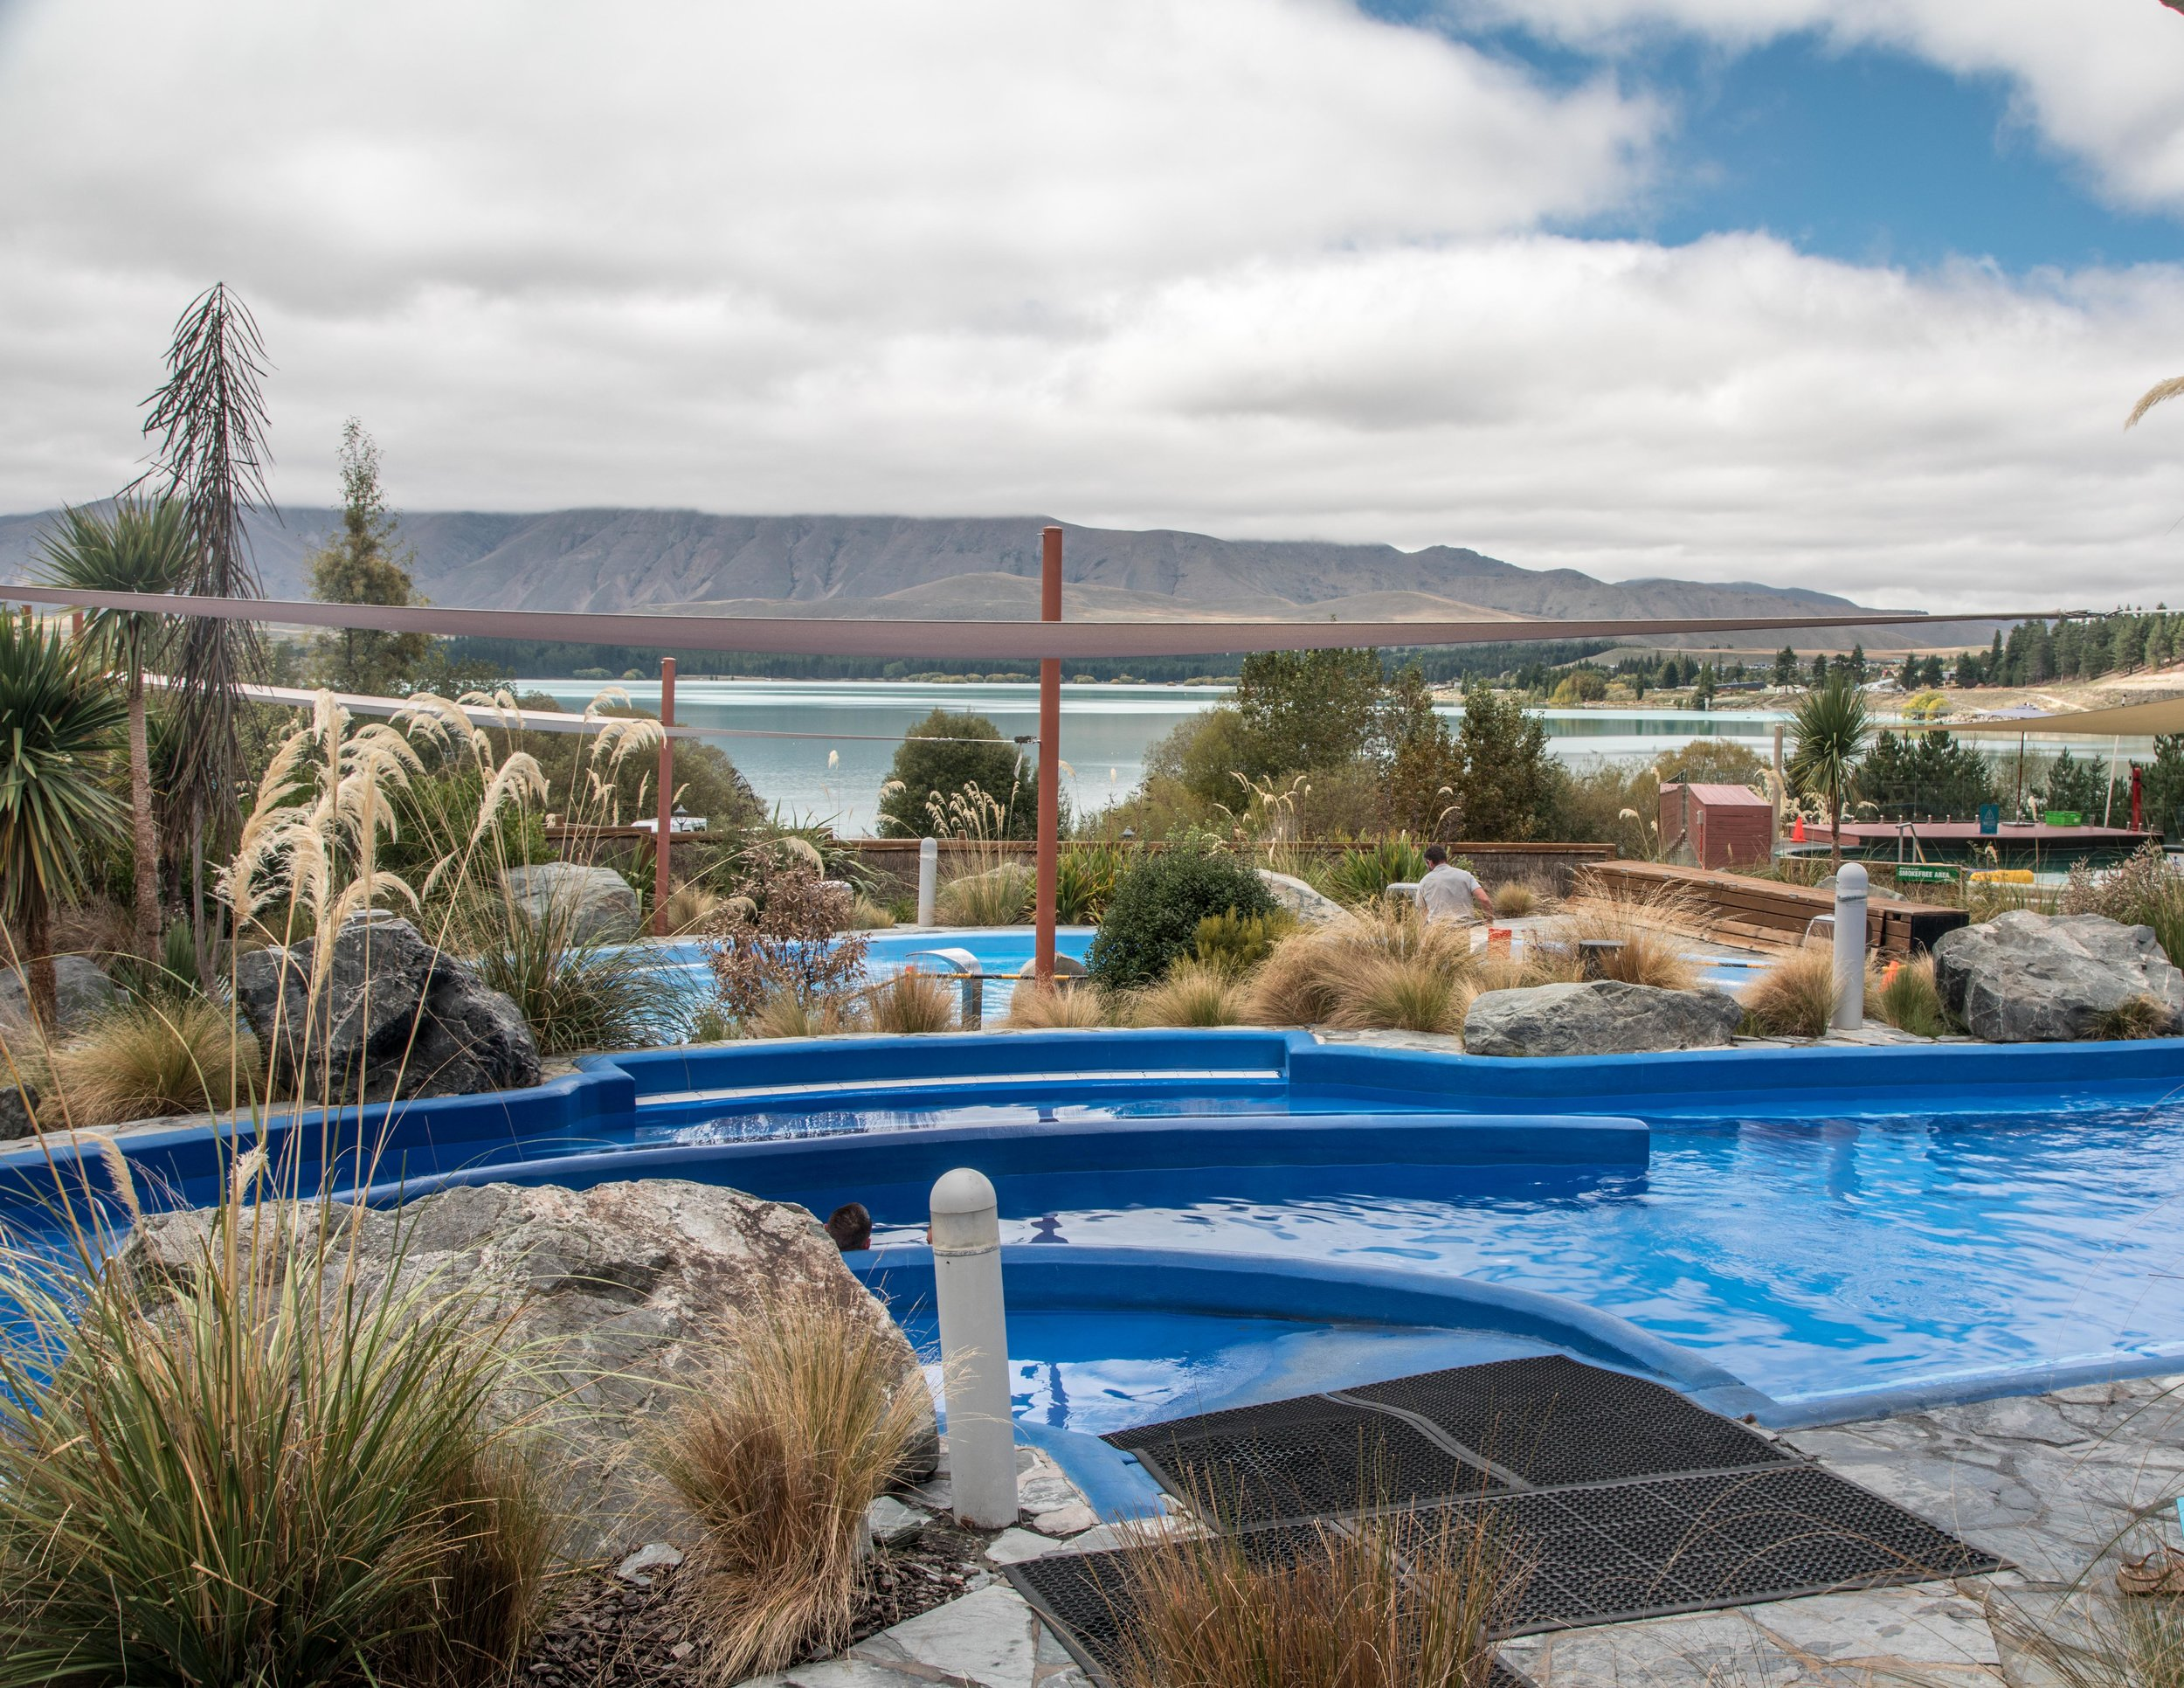 Best Hot Springs in New Zealand: Tekapo Hot Springs